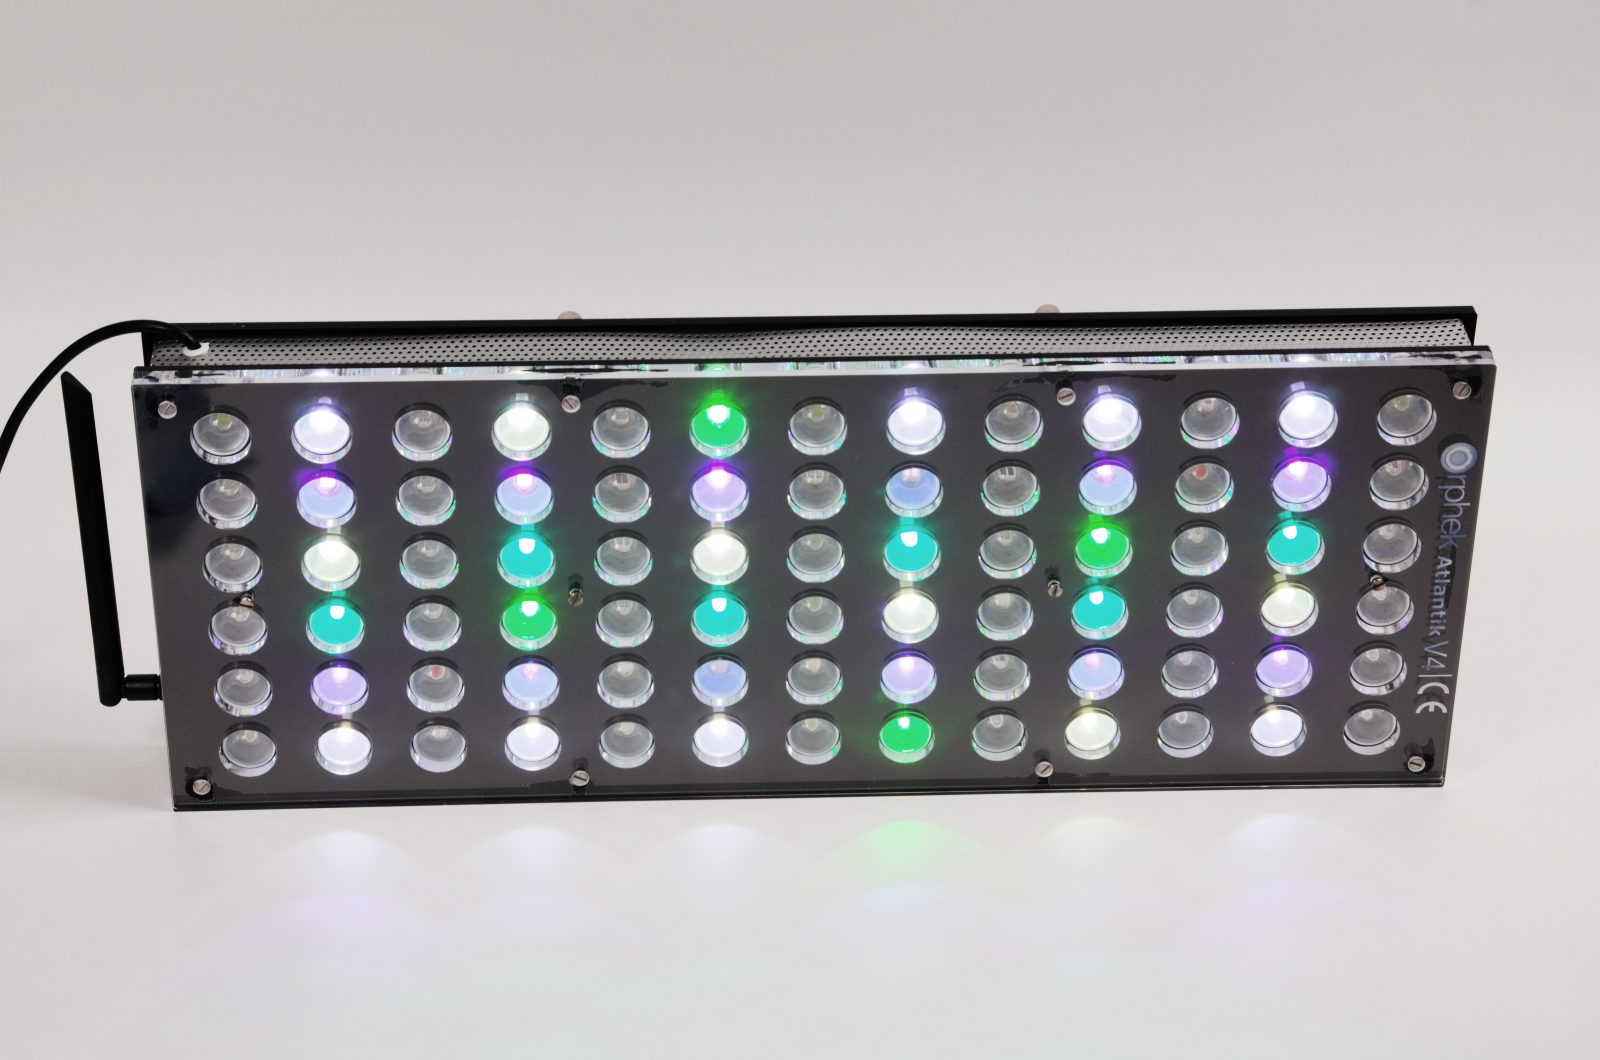 Orphek-Aquarium-LED-Lighting-Reef-Atlantik-V4-light-on-channel 1 + 3